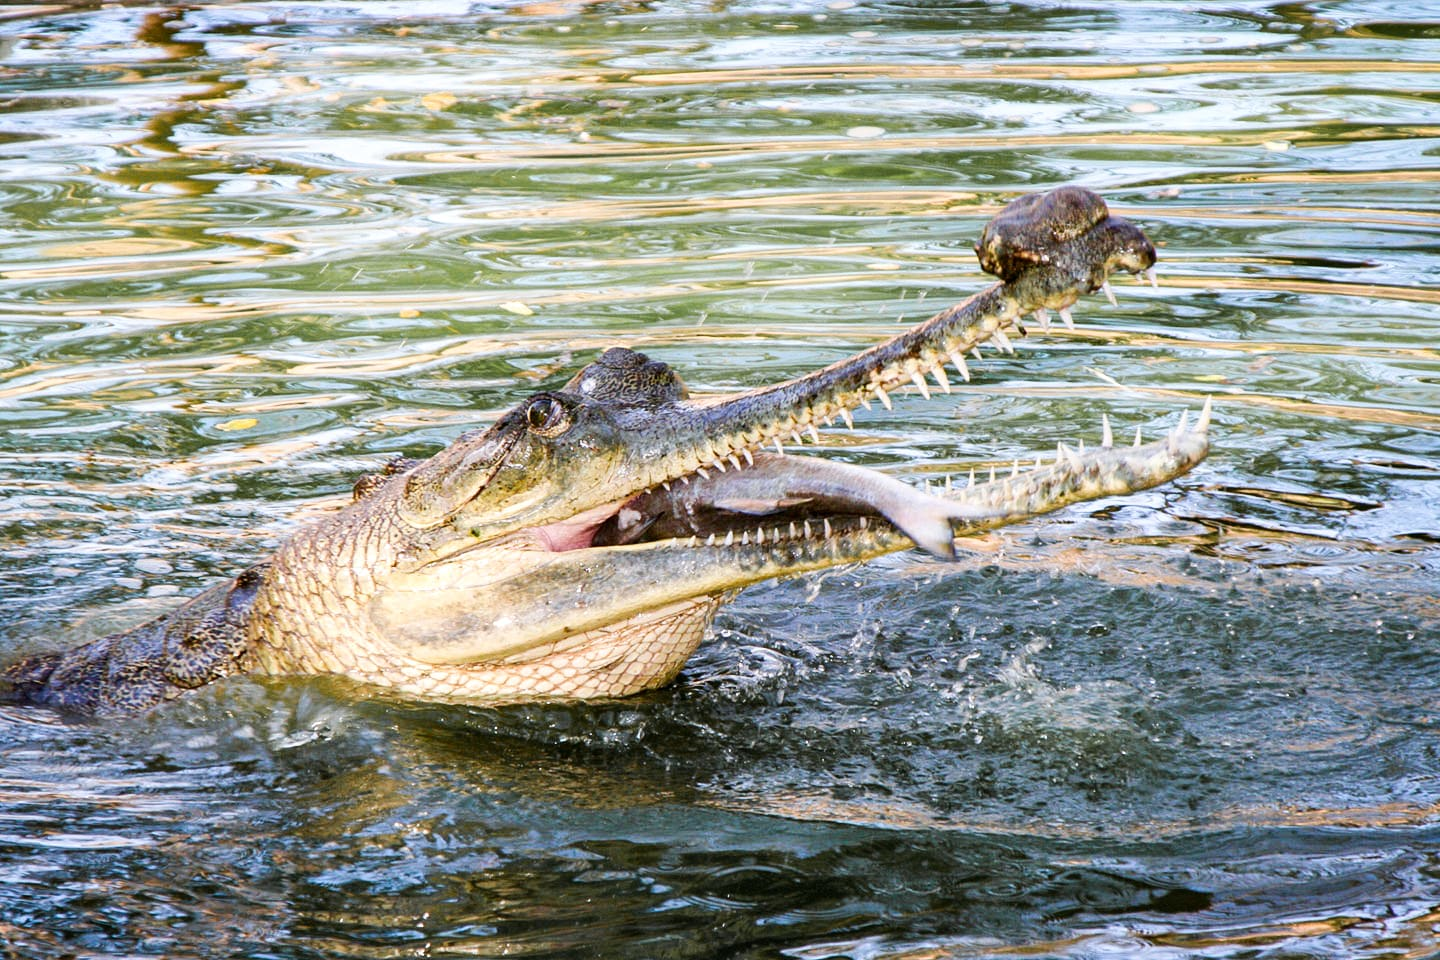 The first thing most humans notice about gharials are their teeth: spiky, razor-sharp, and too many to count. Unfortunately, this instantly plants fear in the minds of most people, even though gharials are mainly fish-eating reptiles. They use their teeth — over 100 in number — to catch slippery fish, which they consume in handsome quantities.  Like many crocodilians, gharials have three eyelids: upper, lower, and an additional third lid that protects the eyes when they dive underwater to catch prey. Photo: Romulus Whitaker